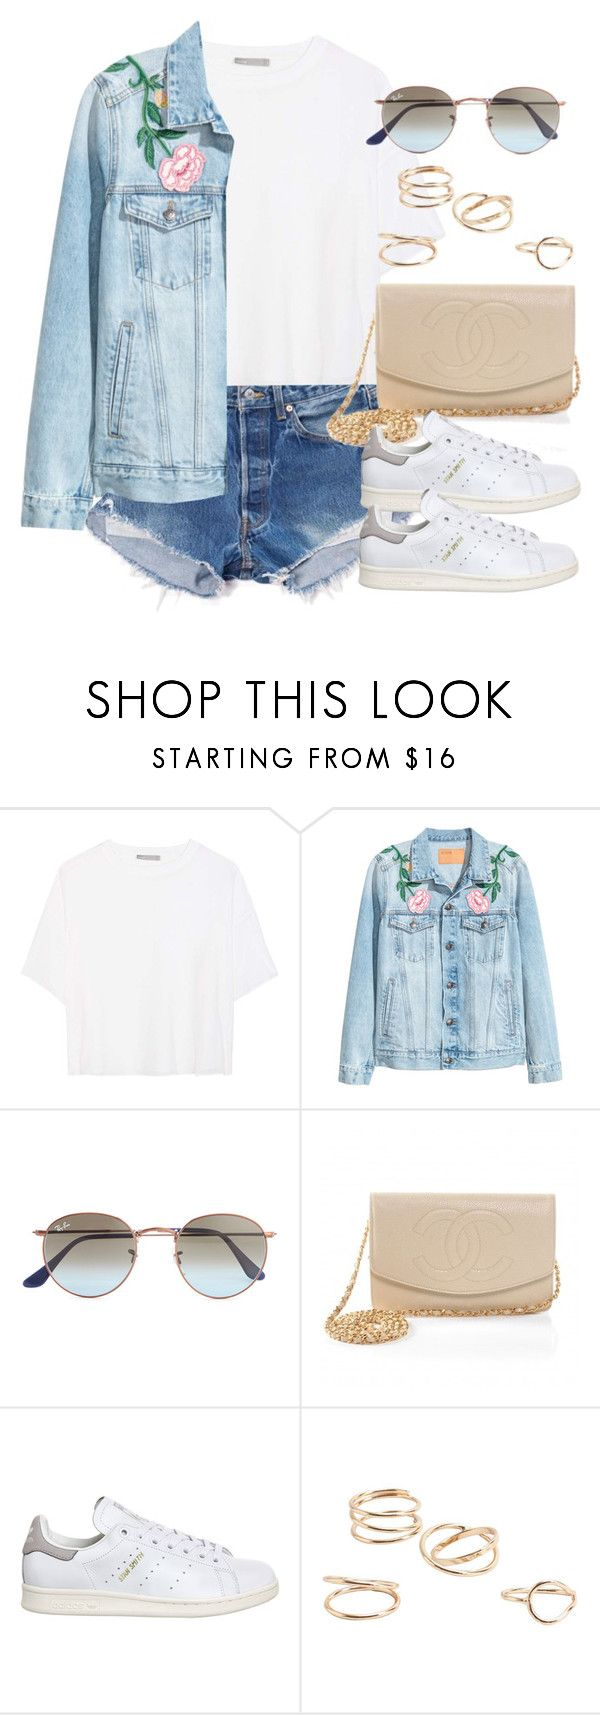 """Sin título #12296"" by vany-alvarado ❤ liked on Polyvore featuring Levi's, Vince, Ray-Ban, Chanel, adidas and MANGO"